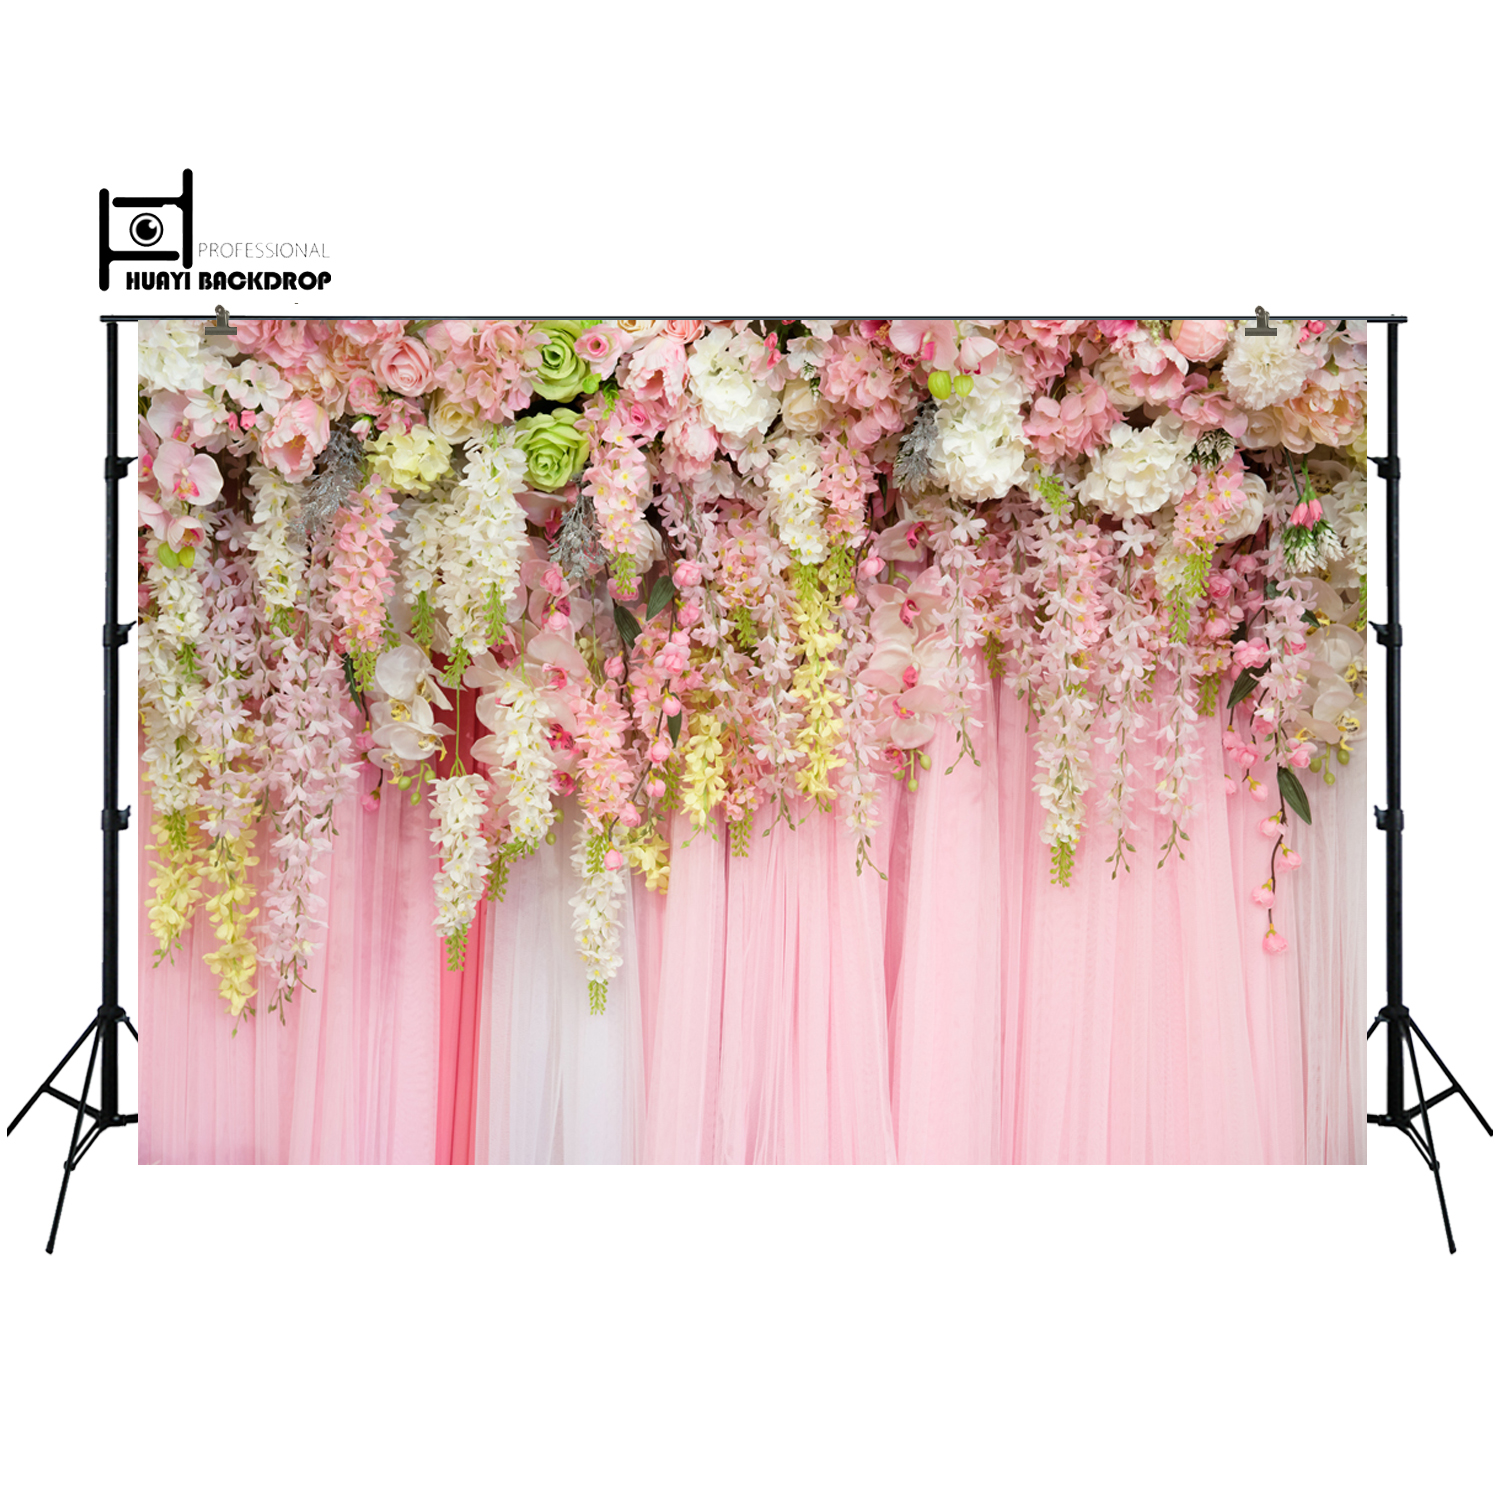 цены Wedding backdrop flowers wall photography background,birthday party baby shower decor banner floral photo backdrop props XT-6740